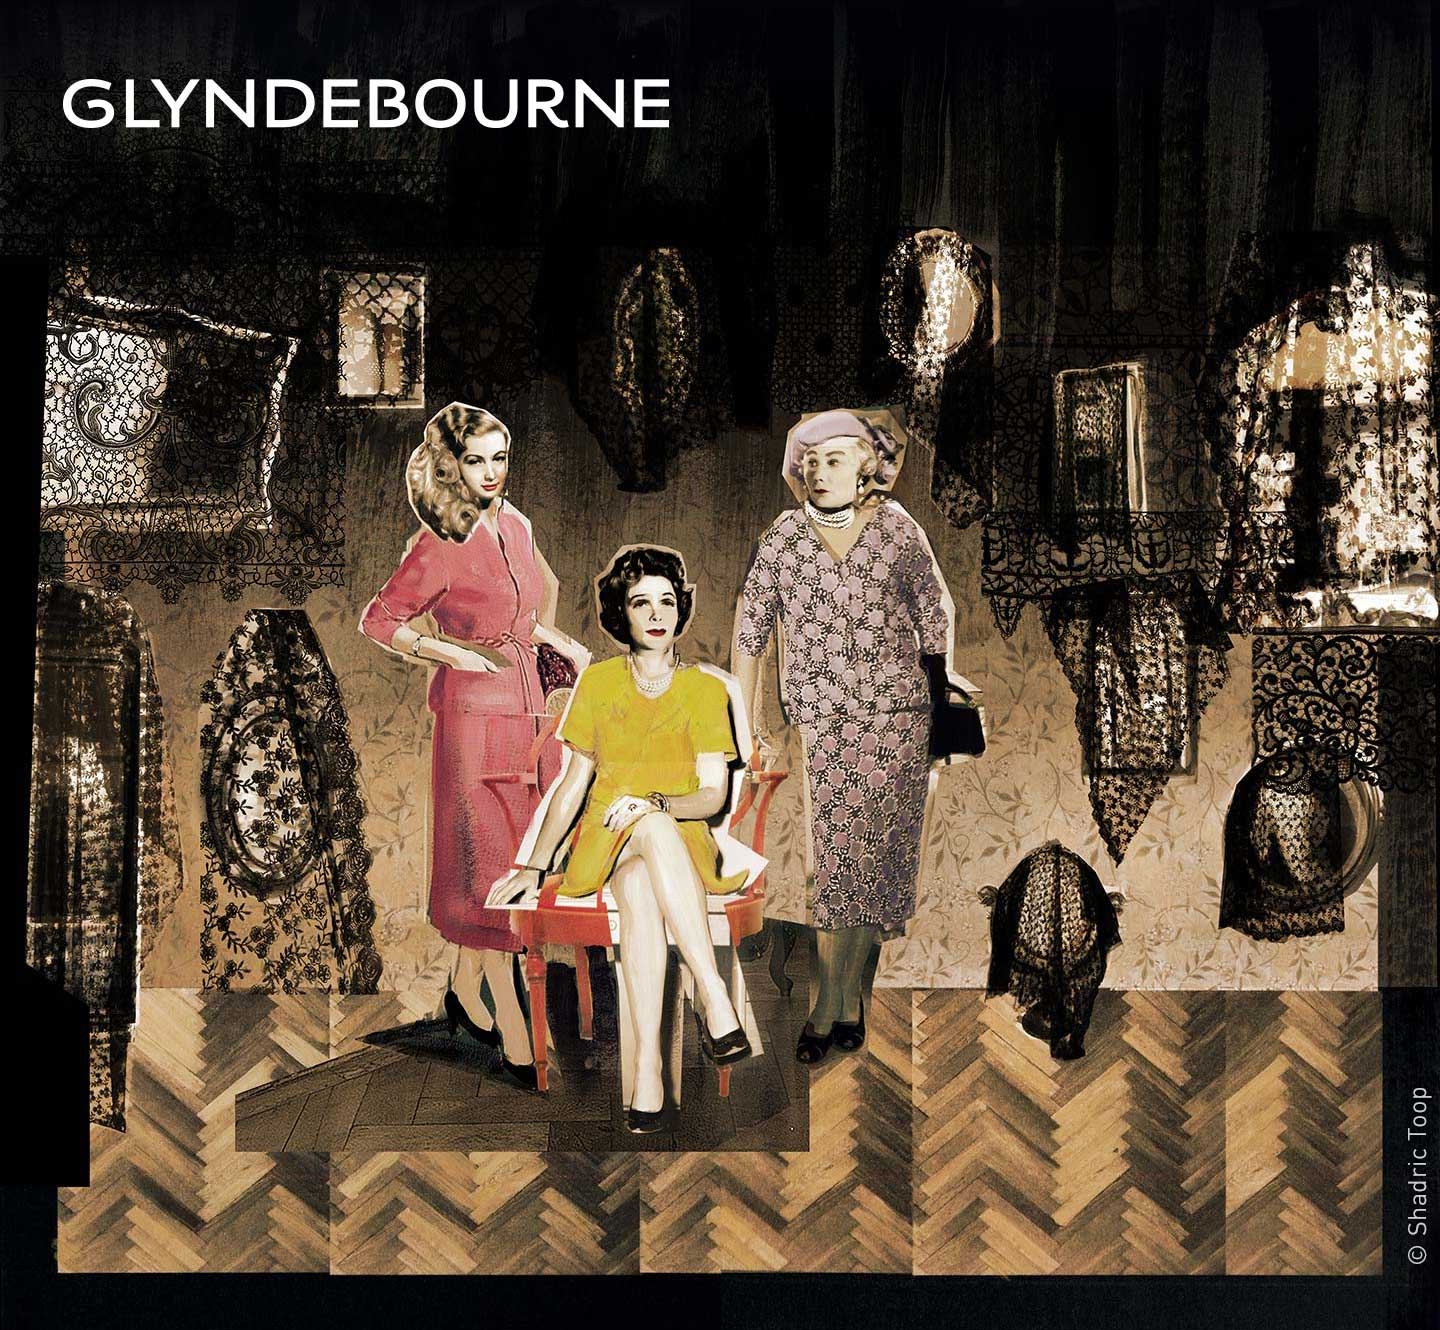 Glyndebourne Festival 2018 featuring characters from the opera Vanessa by Samuel Barber - painted collage illustration by Shadric Toop